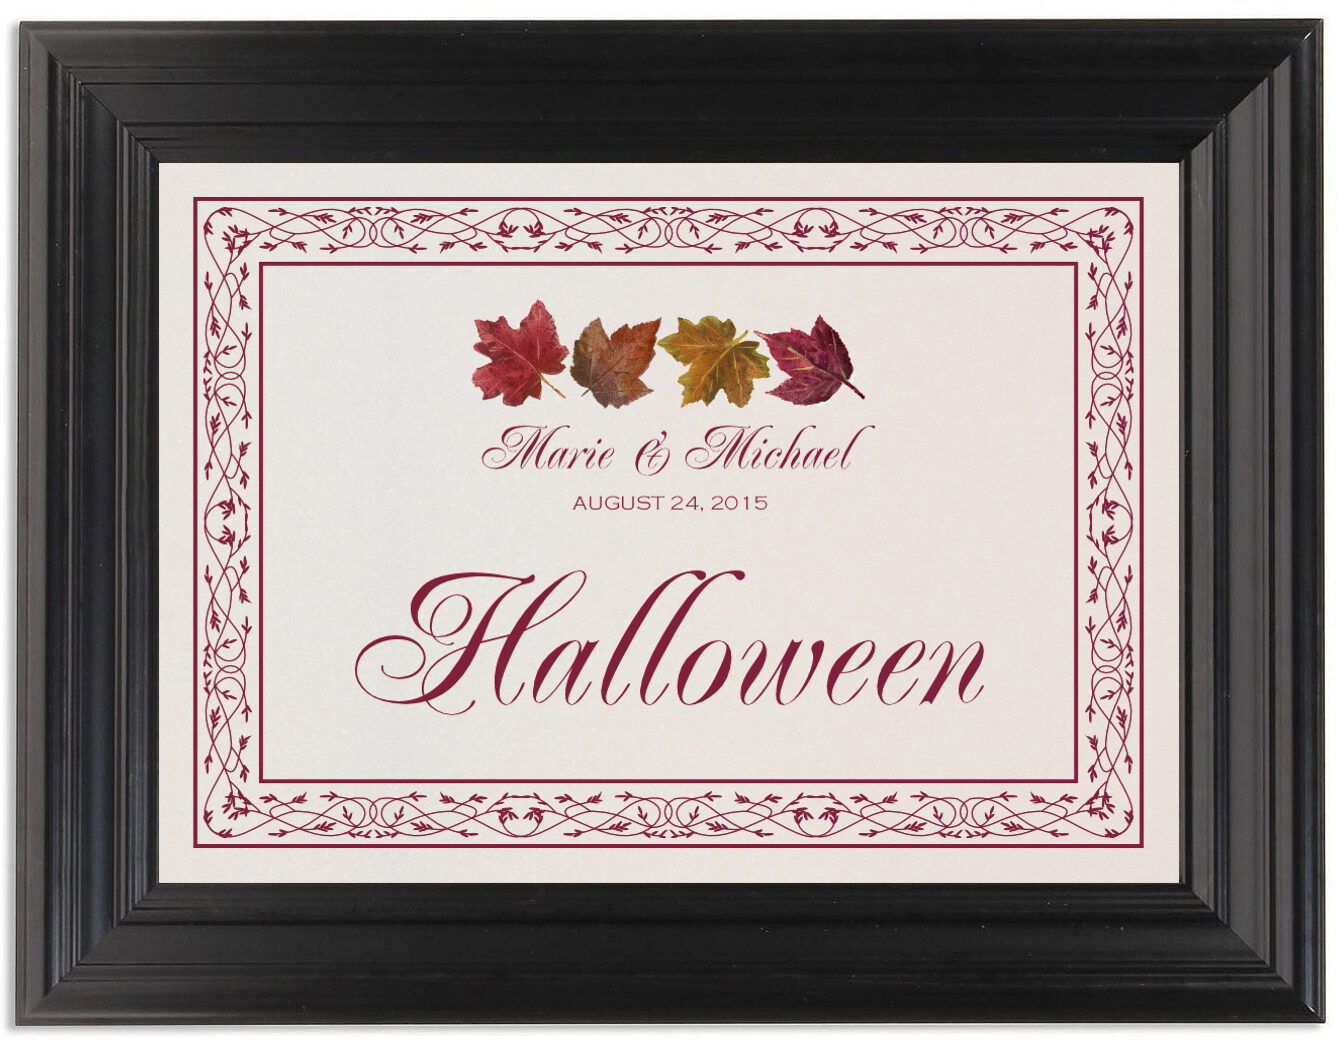 Framed Photograph of Maple Leaf Pattern Table Names